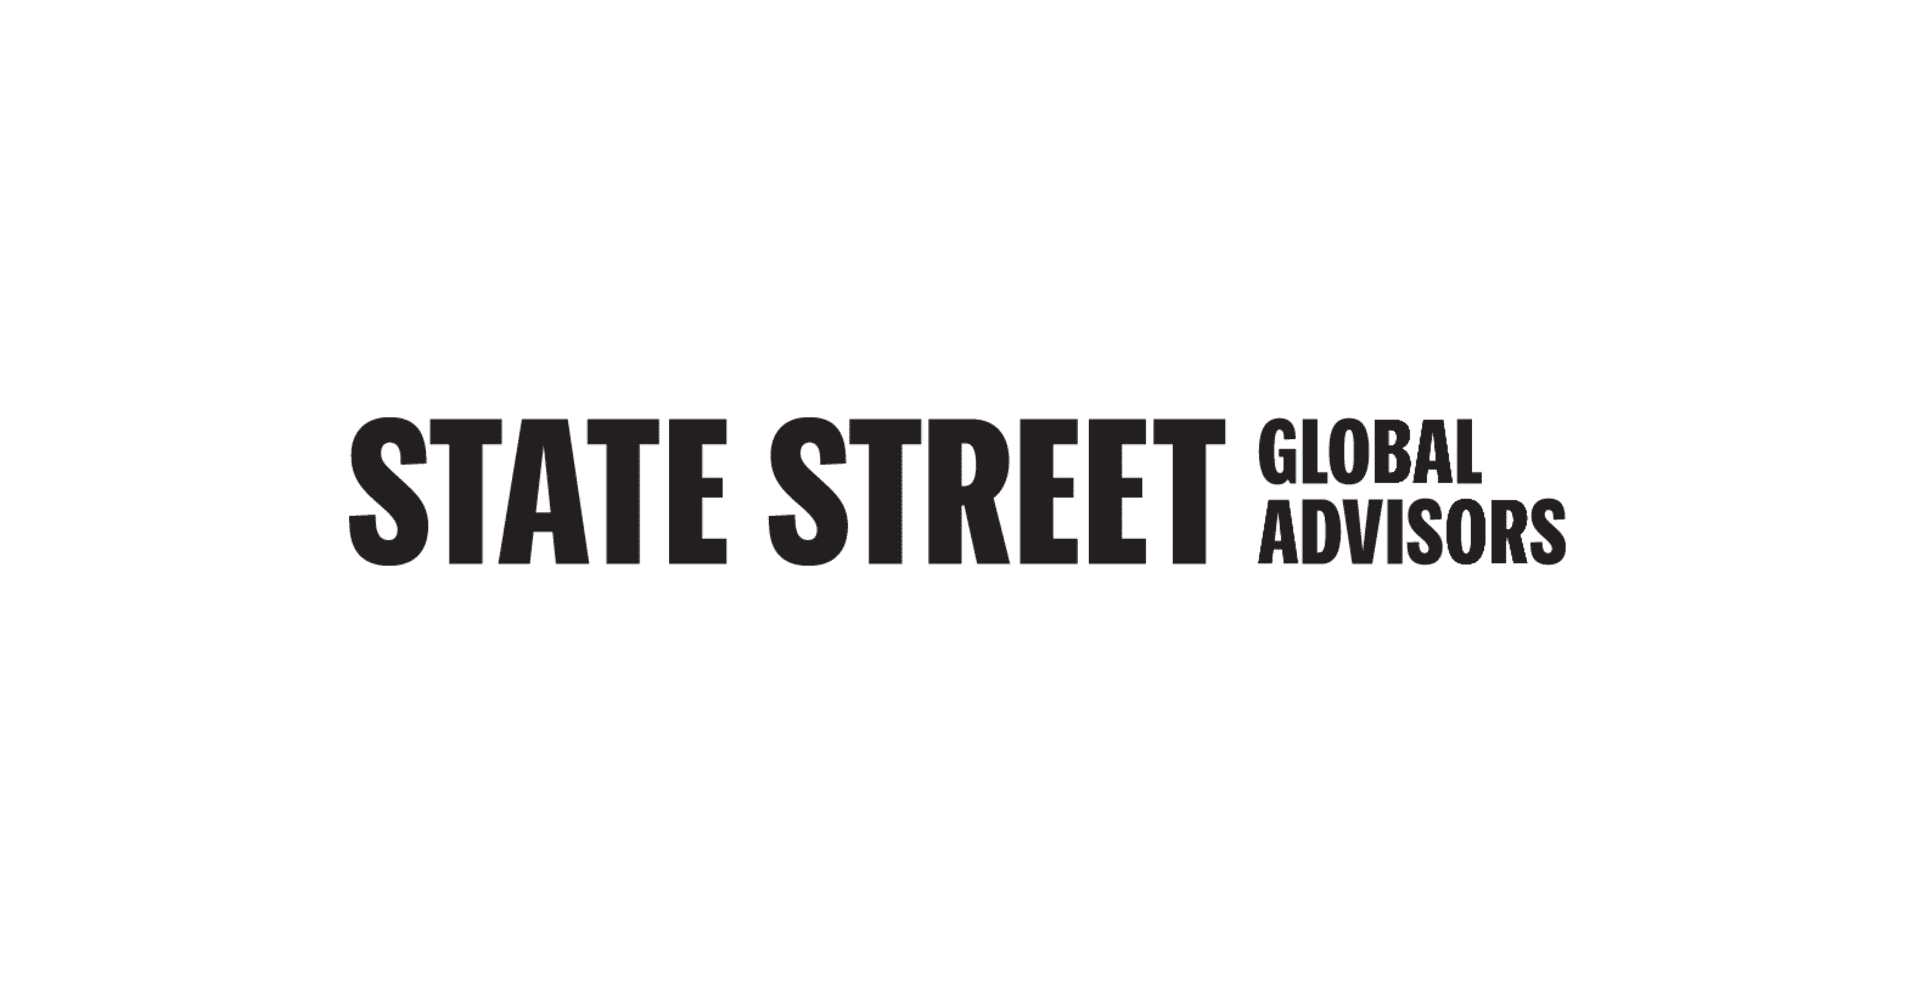 State Street Global Advisors. Thesis Proofreading Services Tom Vac Vitra. Where Do Employers Post Jobs Find A Writer. Learn How To Drive A Car Online. Depuy Hip Replacement Lawsuit. How Much Does A Physical Therapist Assistant Make A Year. Classic Car Title Loans Vermont Rehab Centers. Diagnosis And Treatment Of Hiv. Regency Office Products What Is Outbound Call